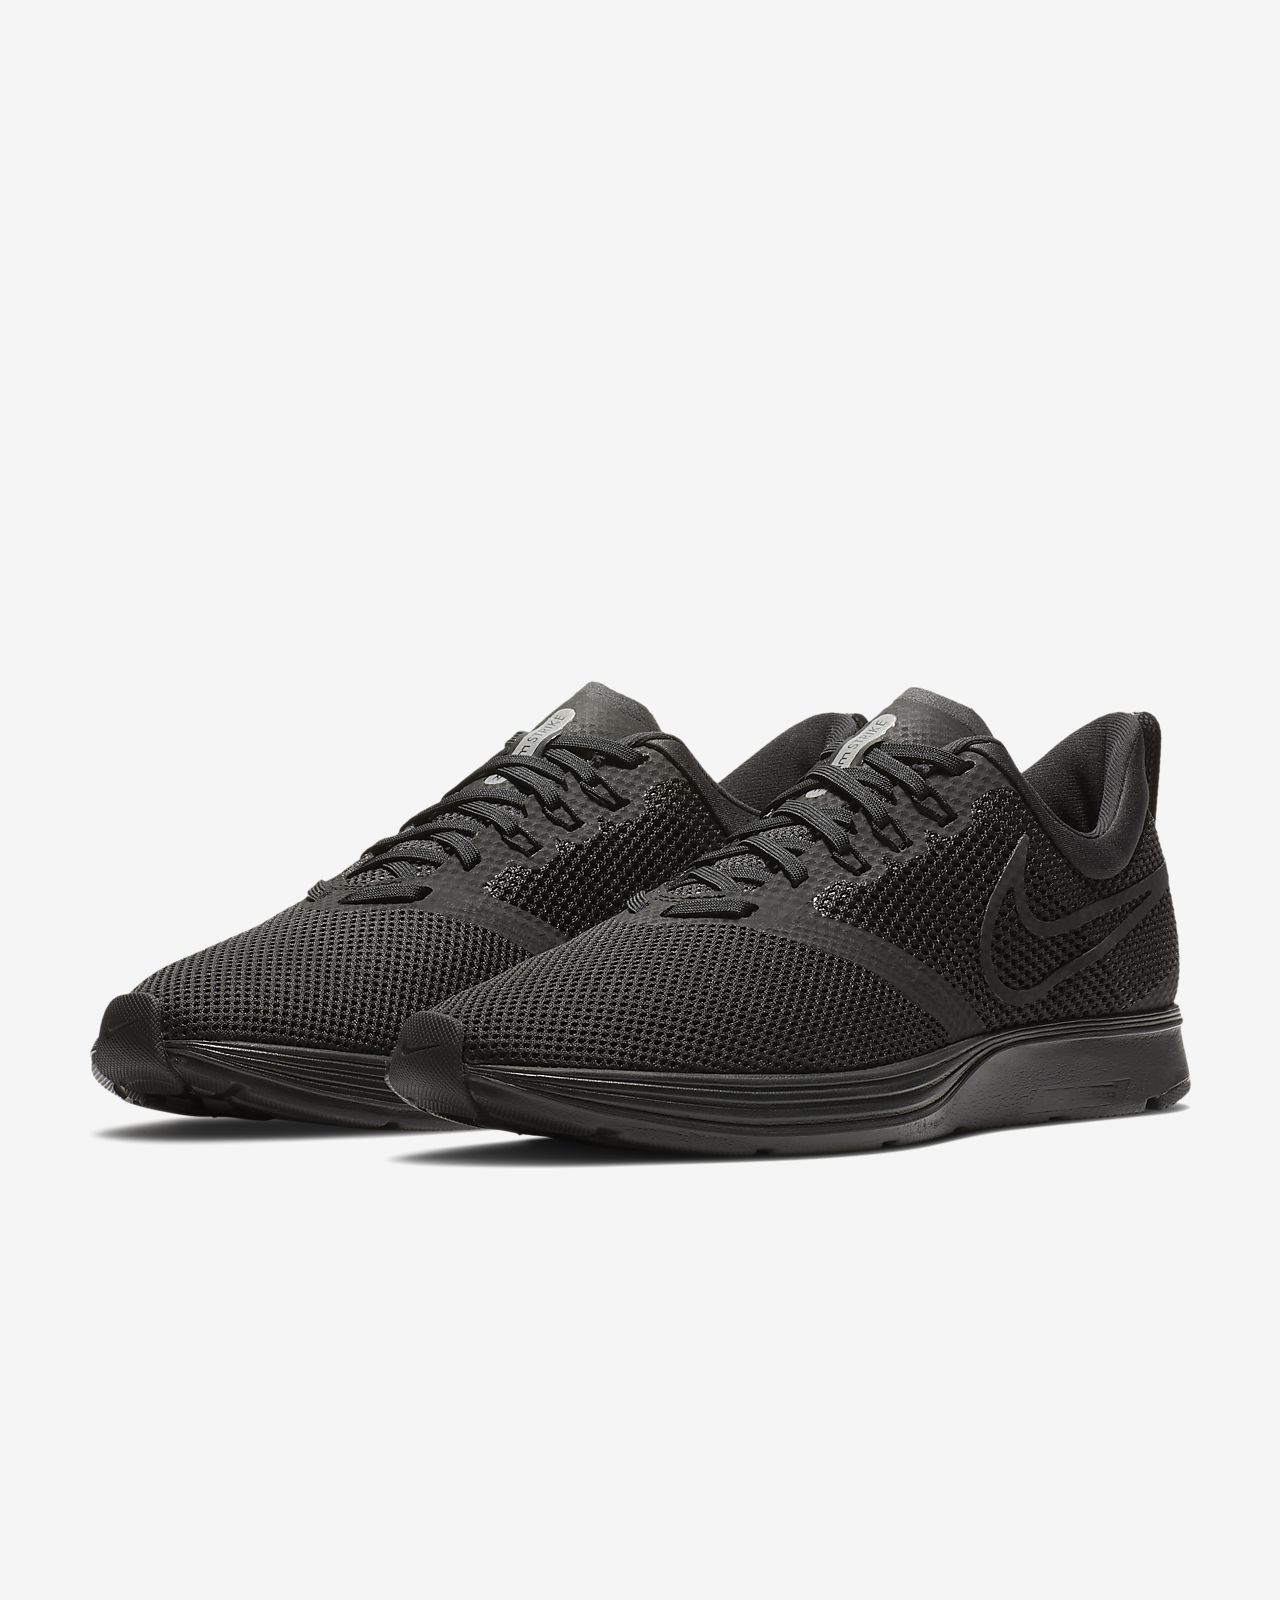 Nike Running Zoom Strike Trainers In Triple Black AJ0189-010 outlet 2015 sale in China free shipping 100% original pictures FKhQwe5